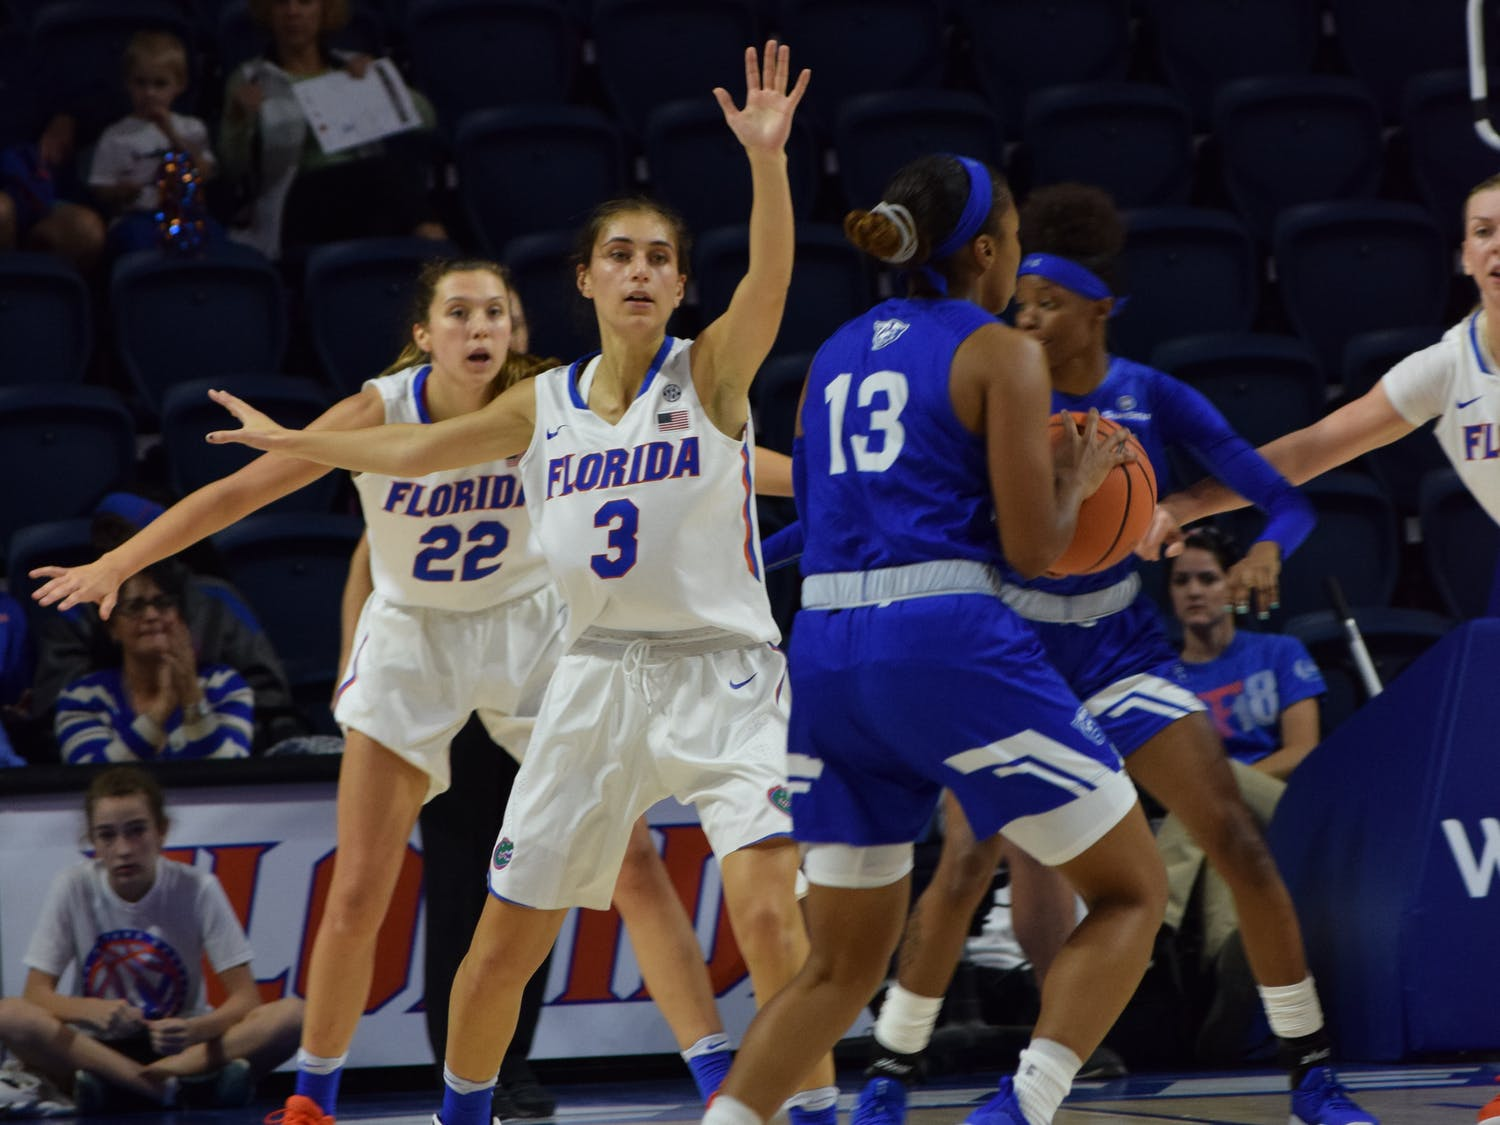 A scoring run between the second and third quarters served as the catalyst the Gators' offense needed as they ran away with the game, beating Georgia State 82-66.